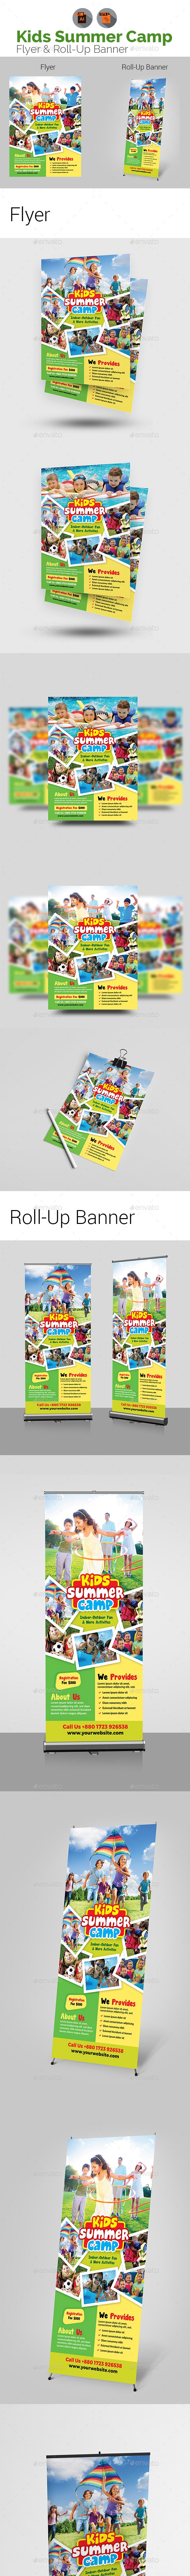 Kids Summer Camp Flyer with Roll-Up Bundle - Corporate Flyers